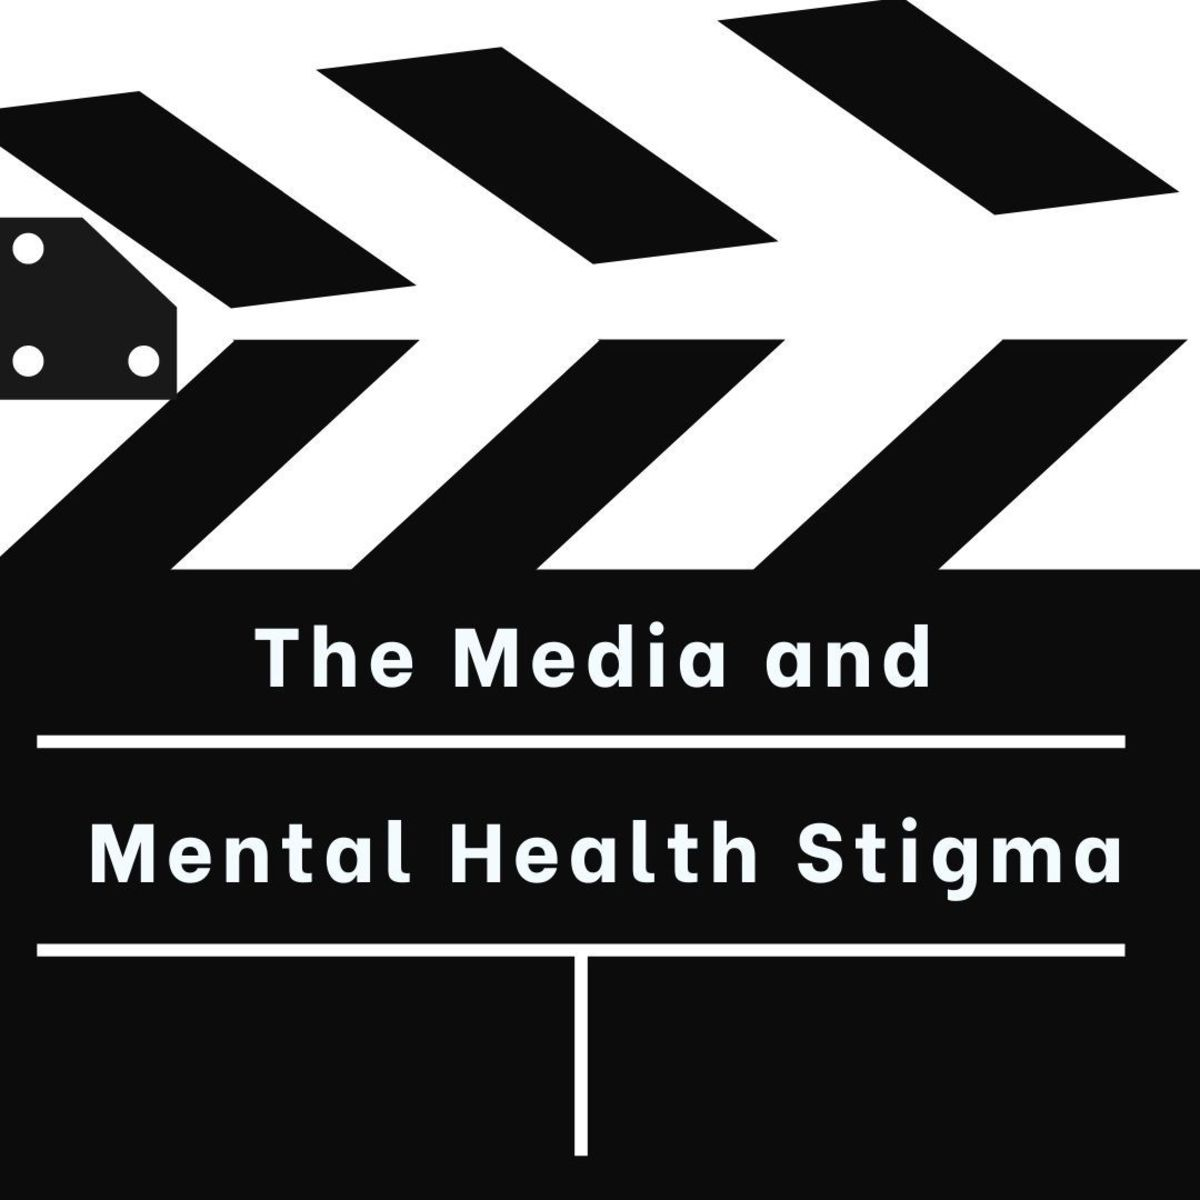 The media perpetuates mental health stigma—read on to find out how.